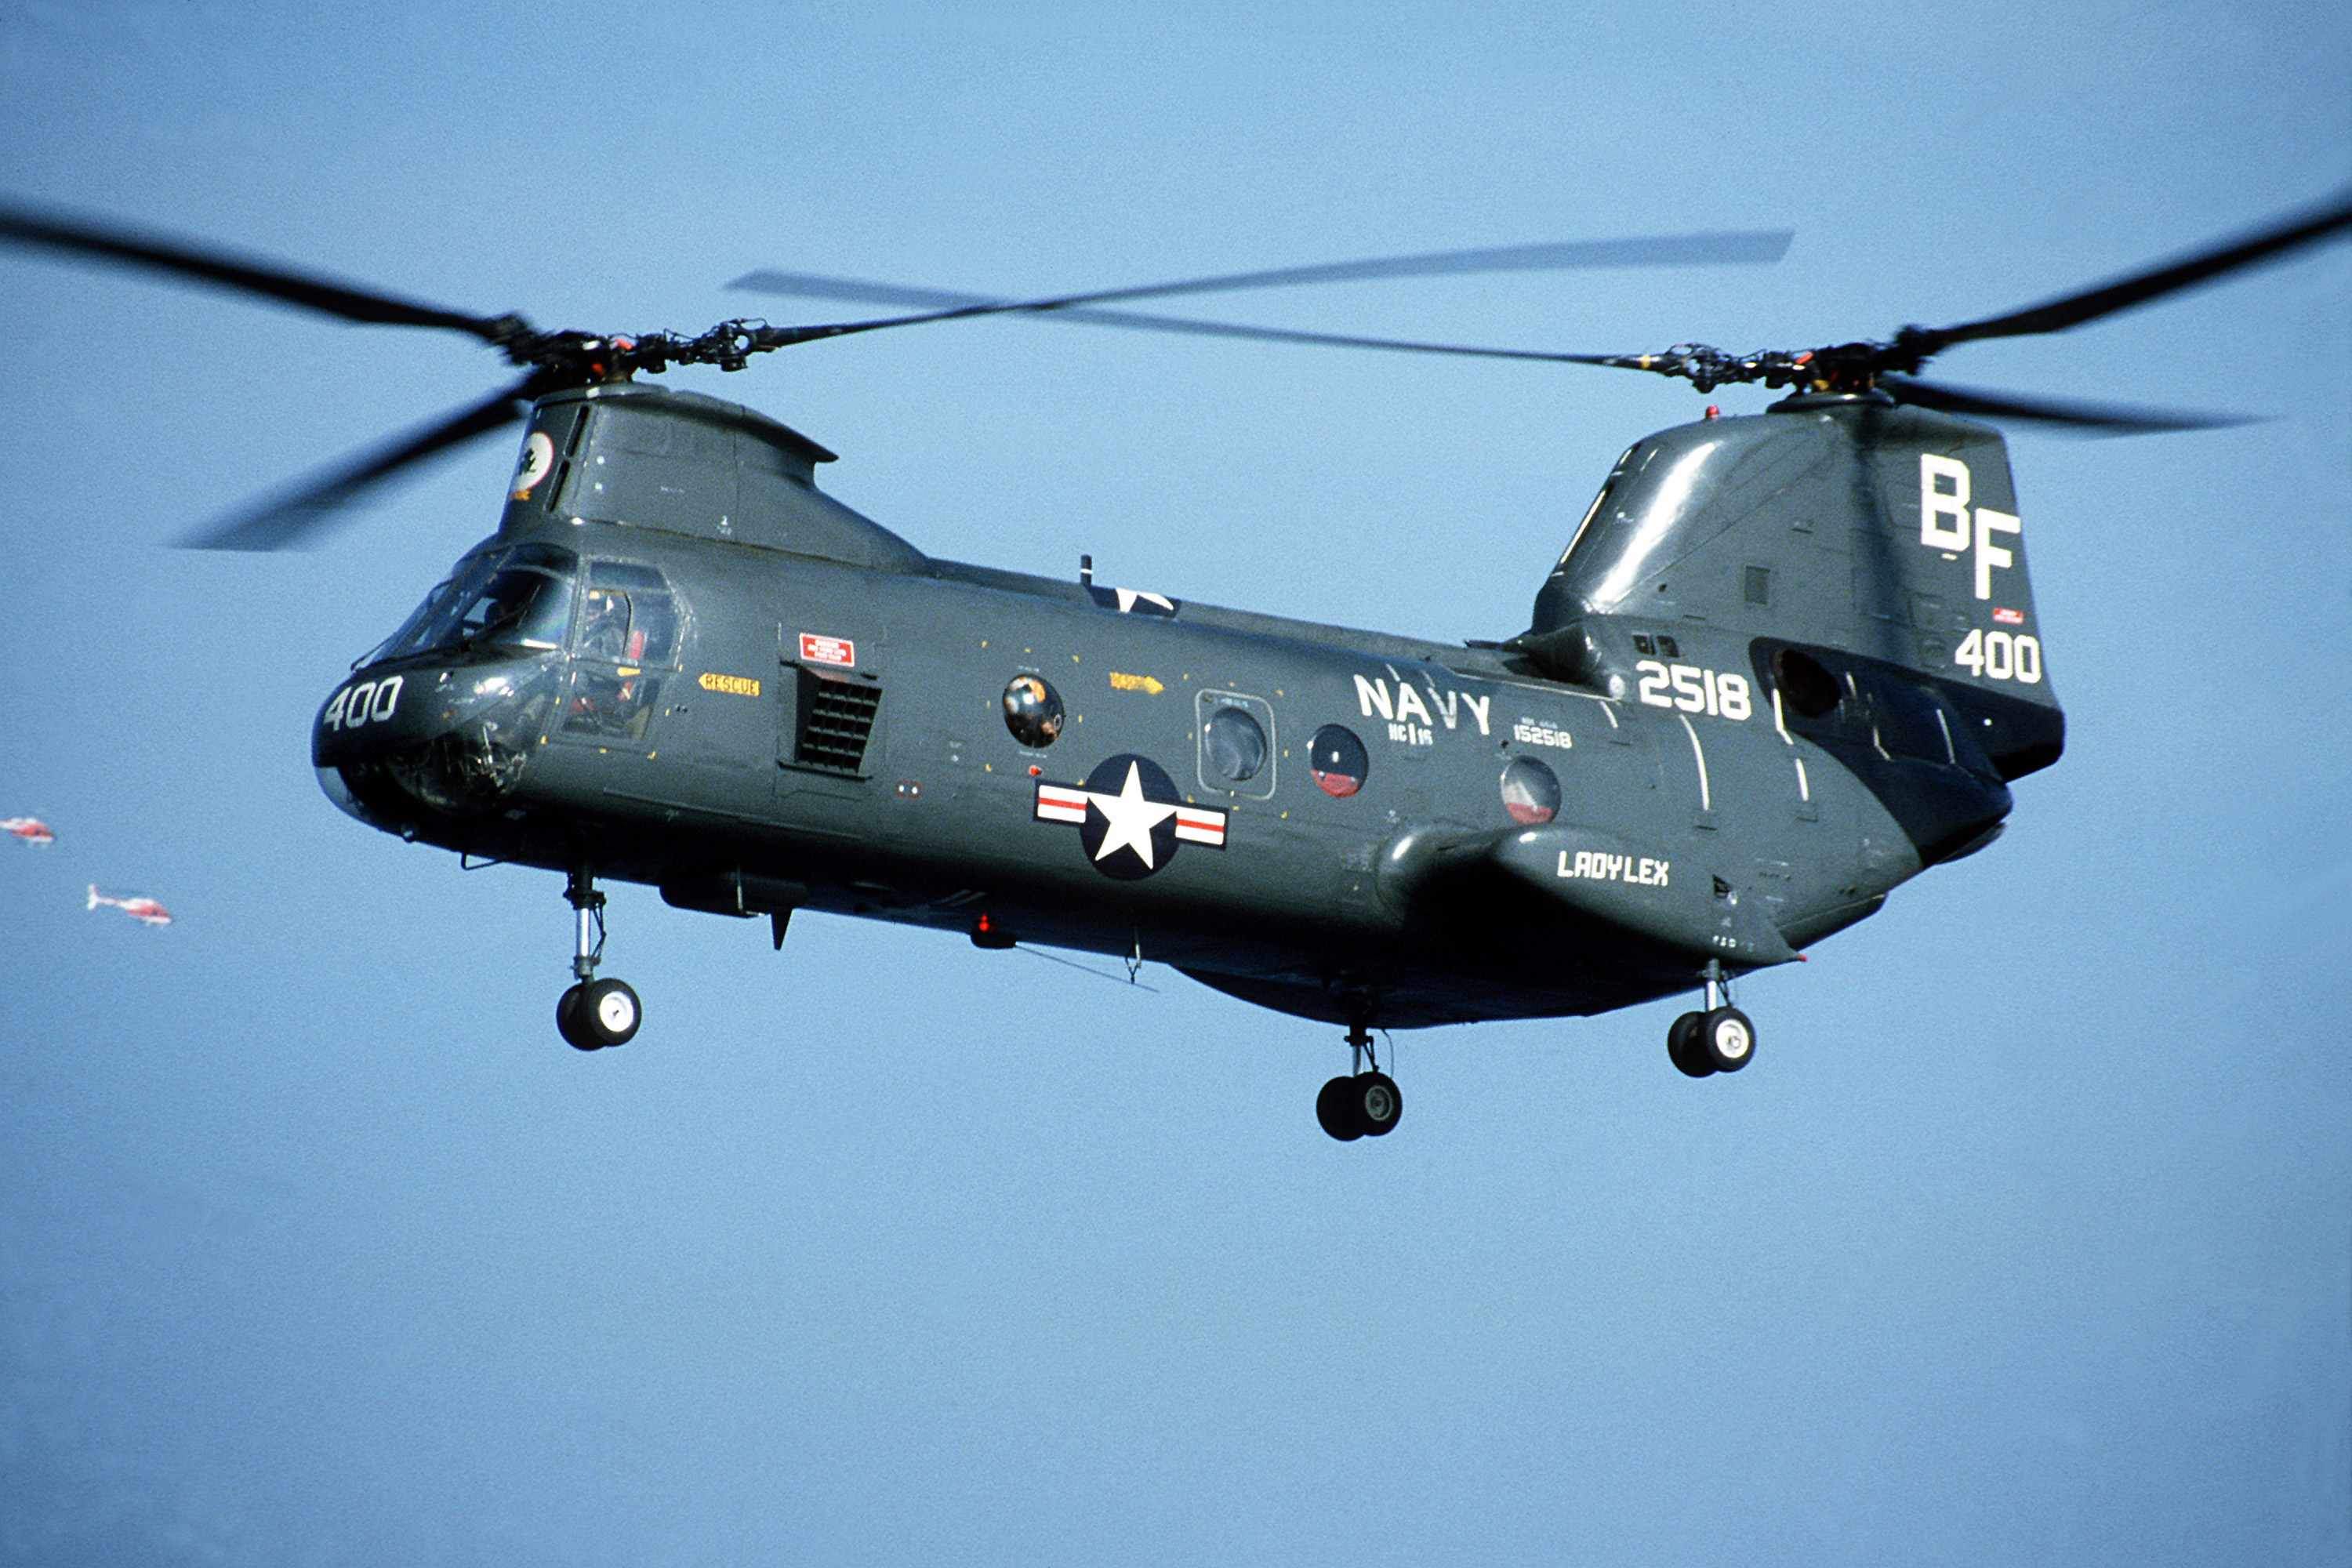 chinook helicopter training with File Hh 46a Sea Knight Of Hc 16 In Flight 1984 on Boeing Receives Order From India For 22 Apache And 15 Chinook Helicopters in addition ARSOAC additionally Icing Helicopters Land Right Away also File Chinook airlifting an F 15 besides 4 Para Chinook Jump.